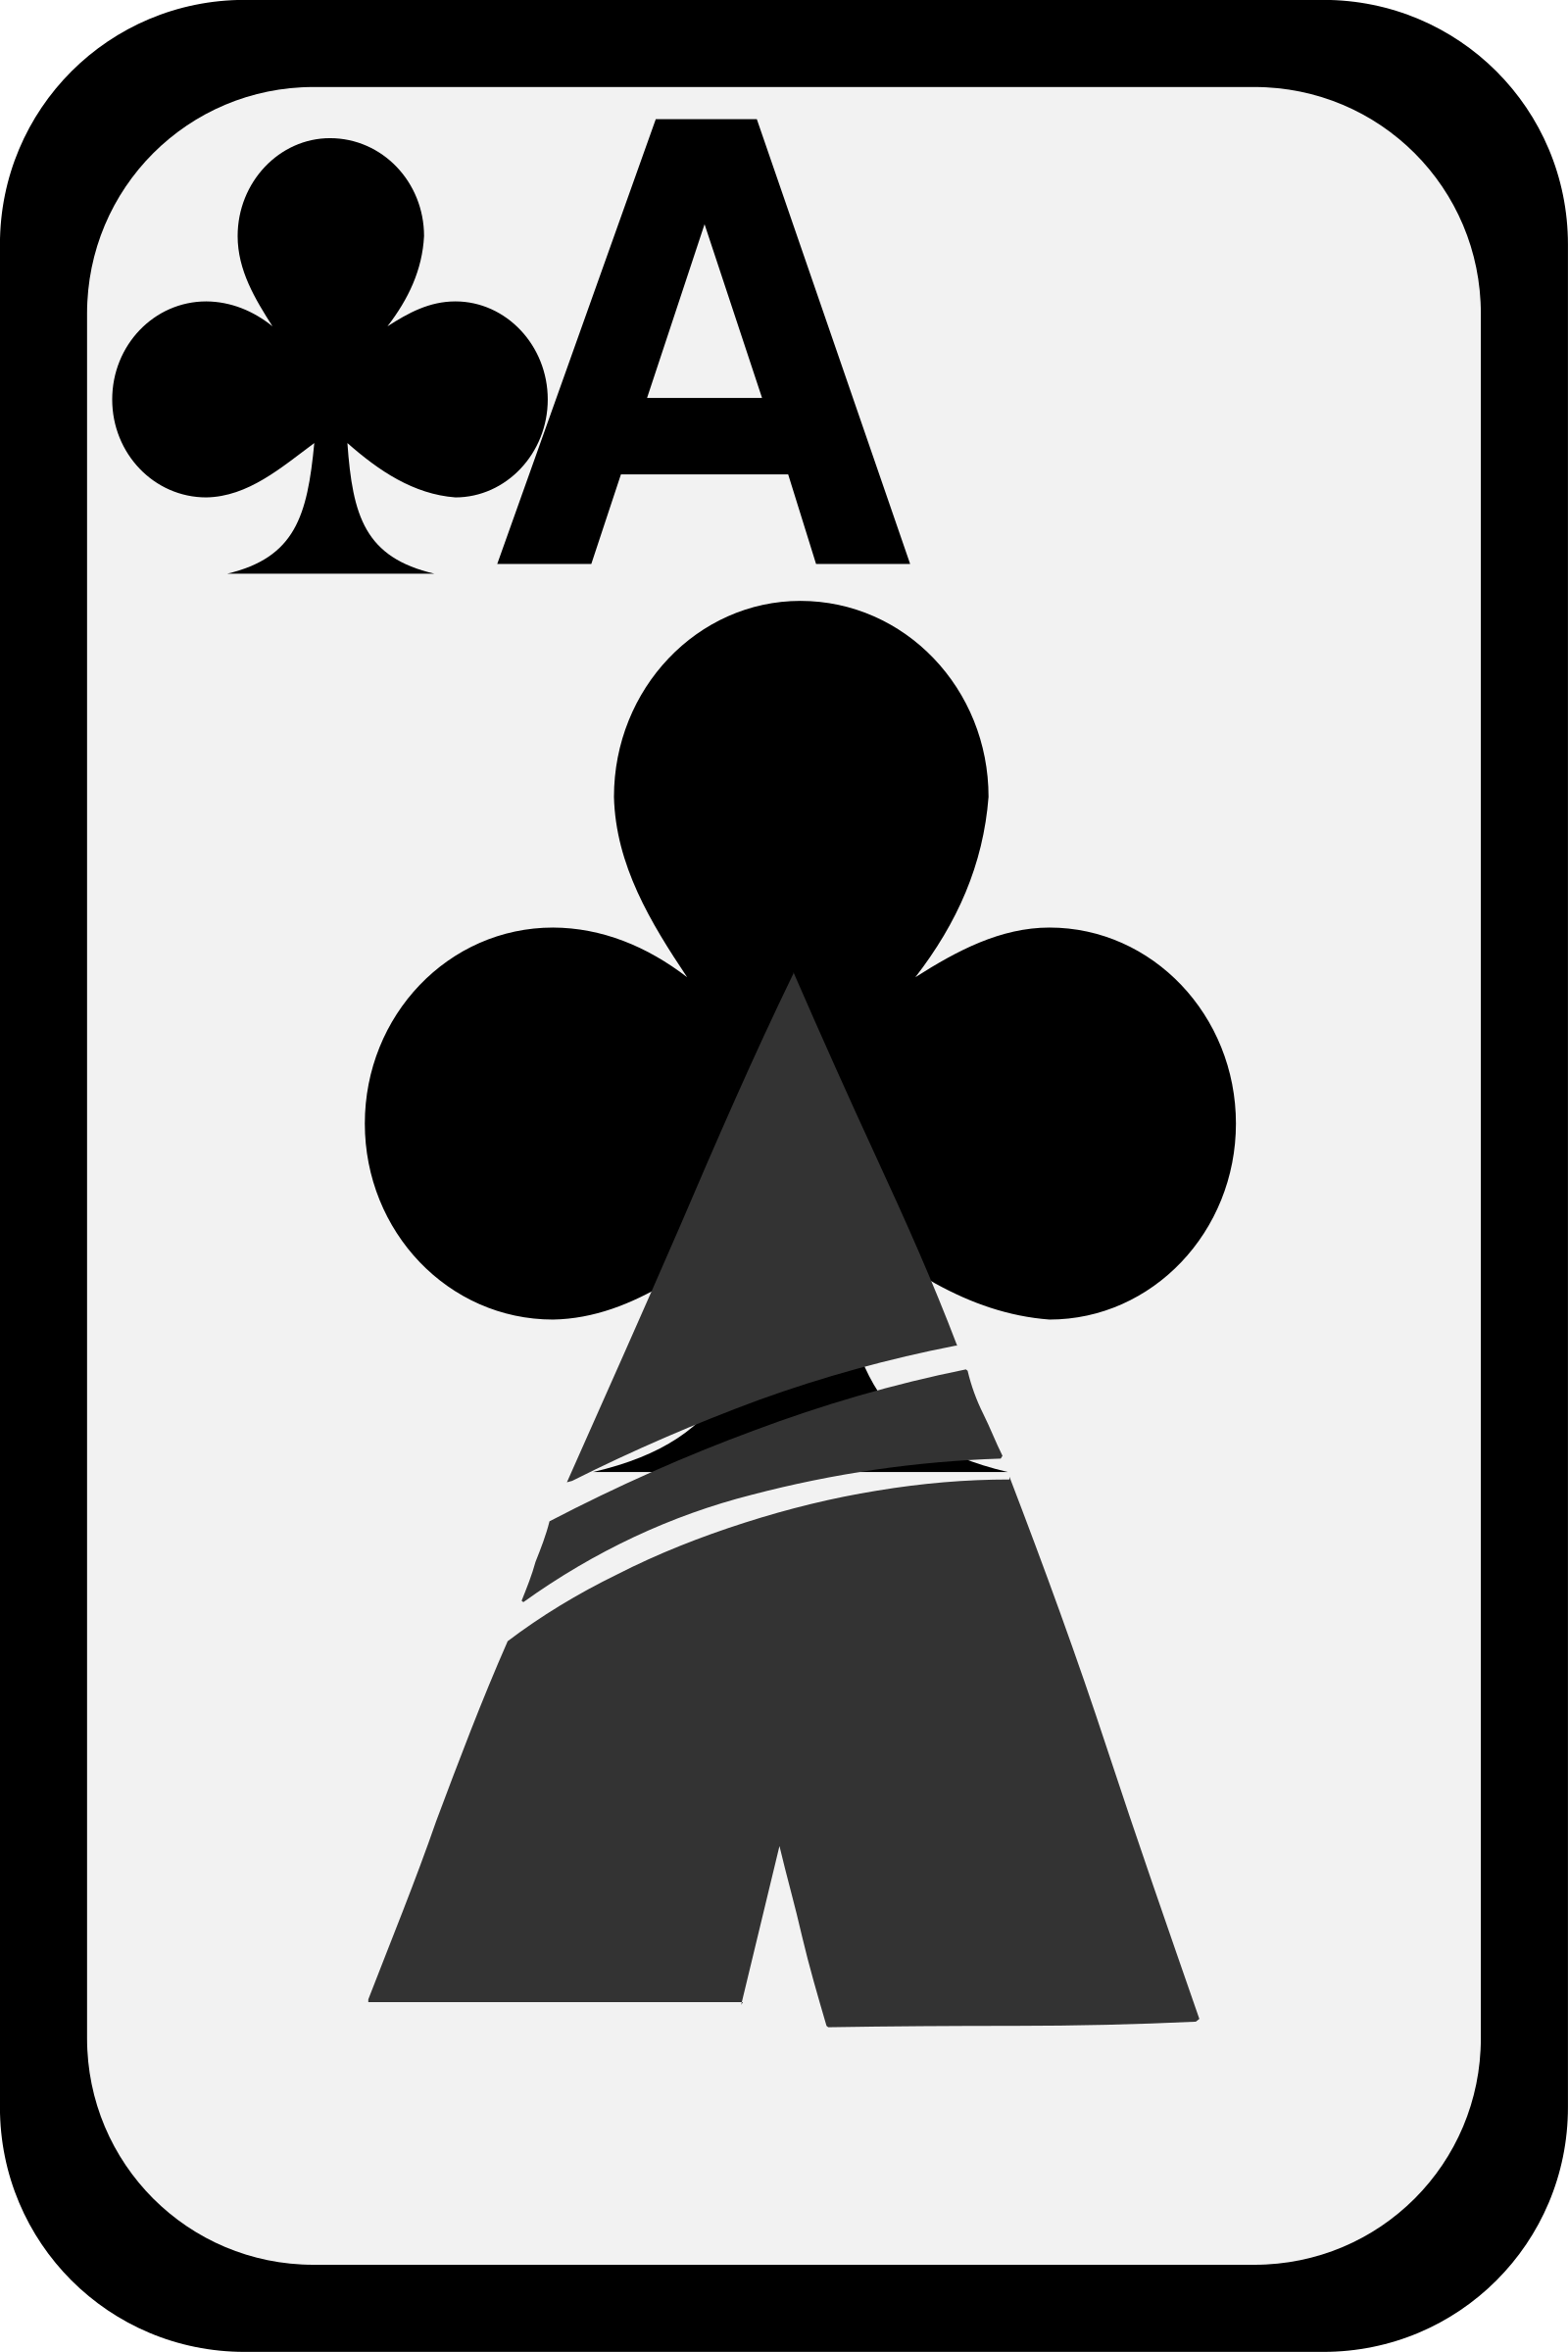 Ace of Clubs by momoko